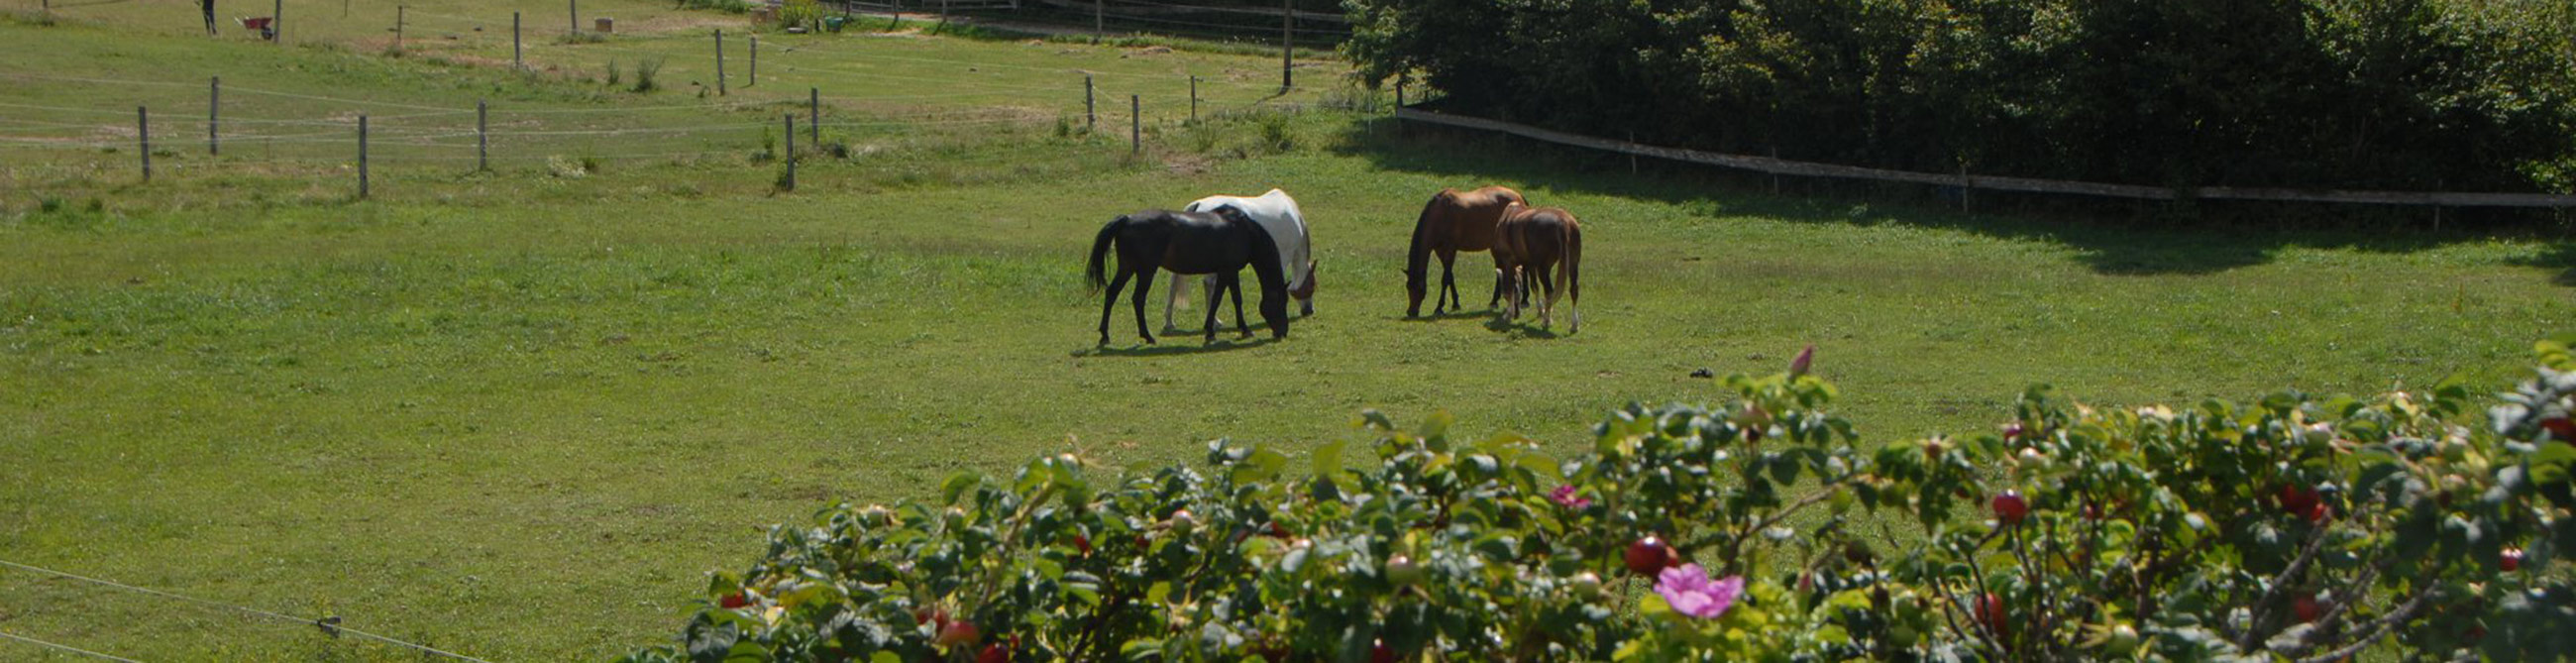 pension chevaux essertines-sur-rolle les dudes